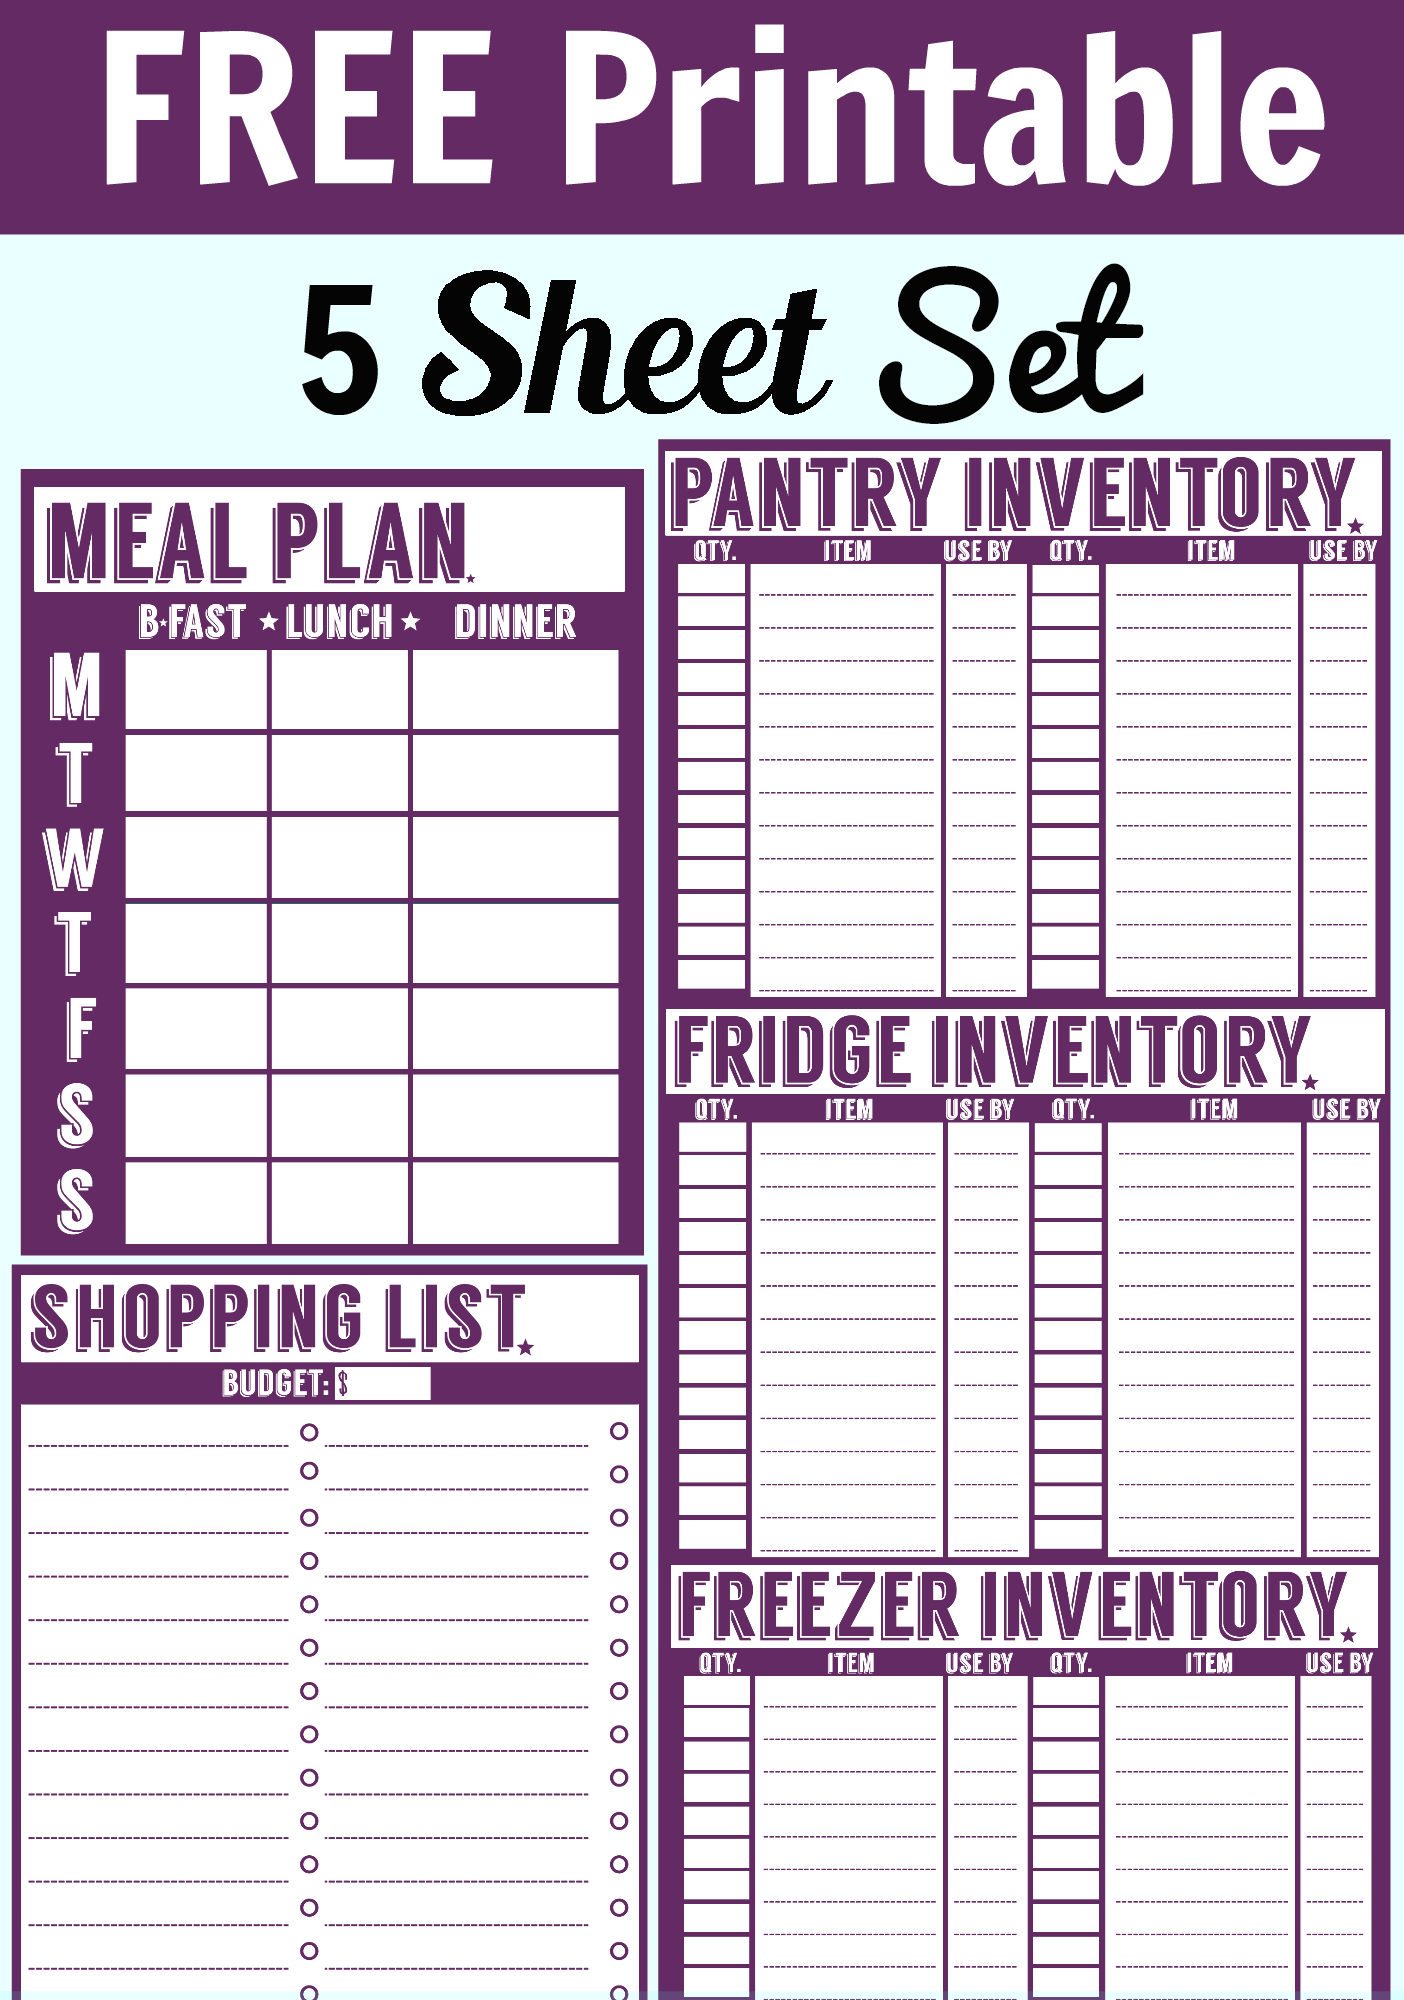 Free Printable Menu Planner, Shopping List & Inventory Sheets Within Printable Inventory Spreadsheet